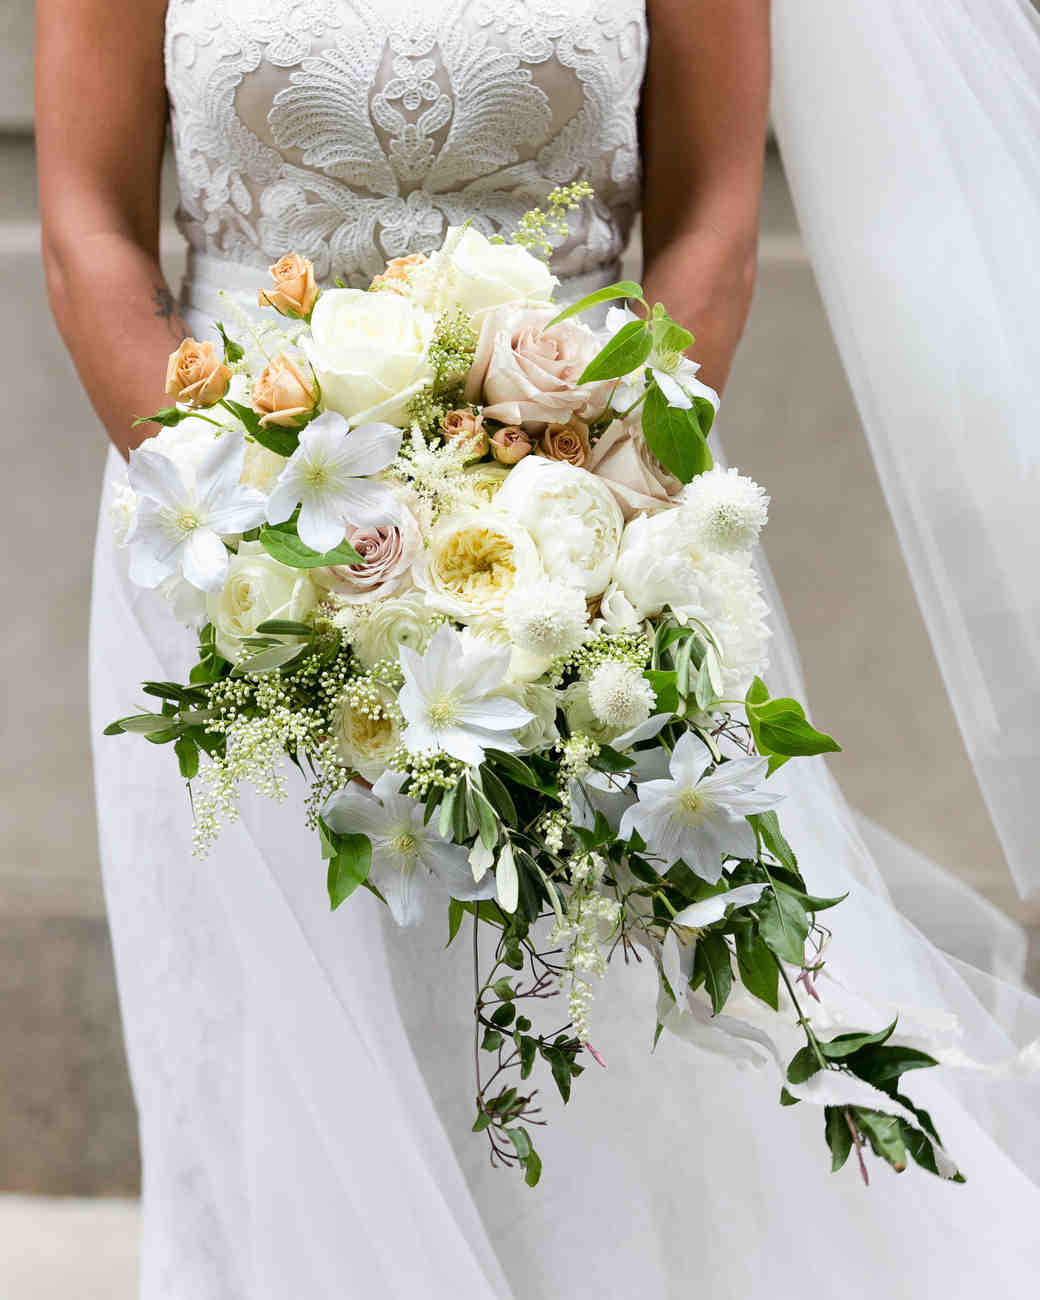 Wedding Flower Arrangements: 40 Chic Cascading Wedding Bouquets